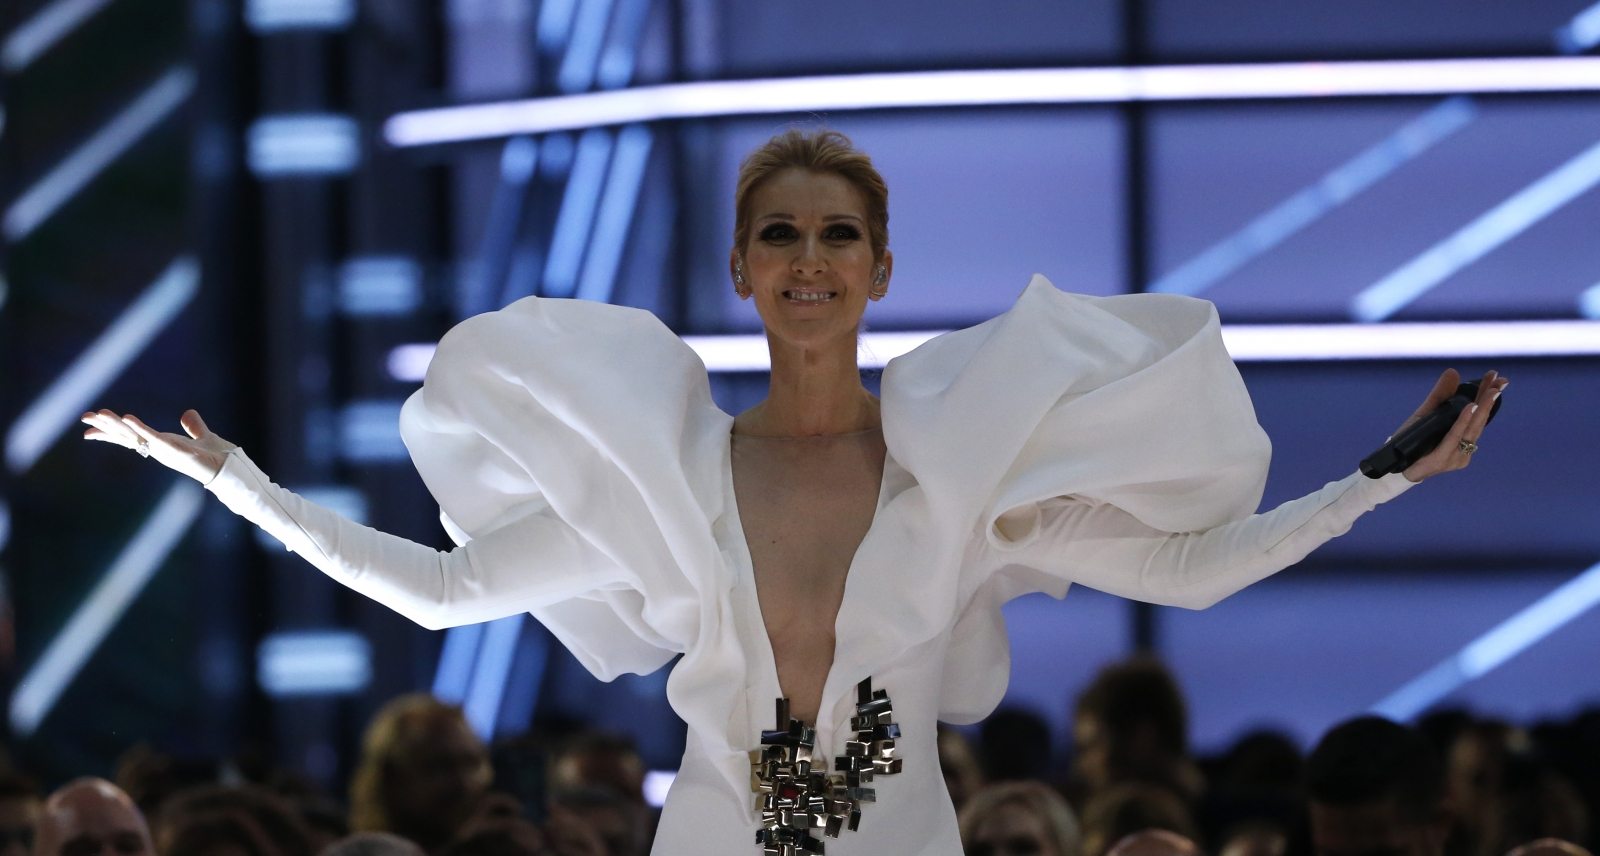 watch celine dion 39 s powerful 20th anniversary performance. Black Bedroom Furniture Sets. Home Design Ideas